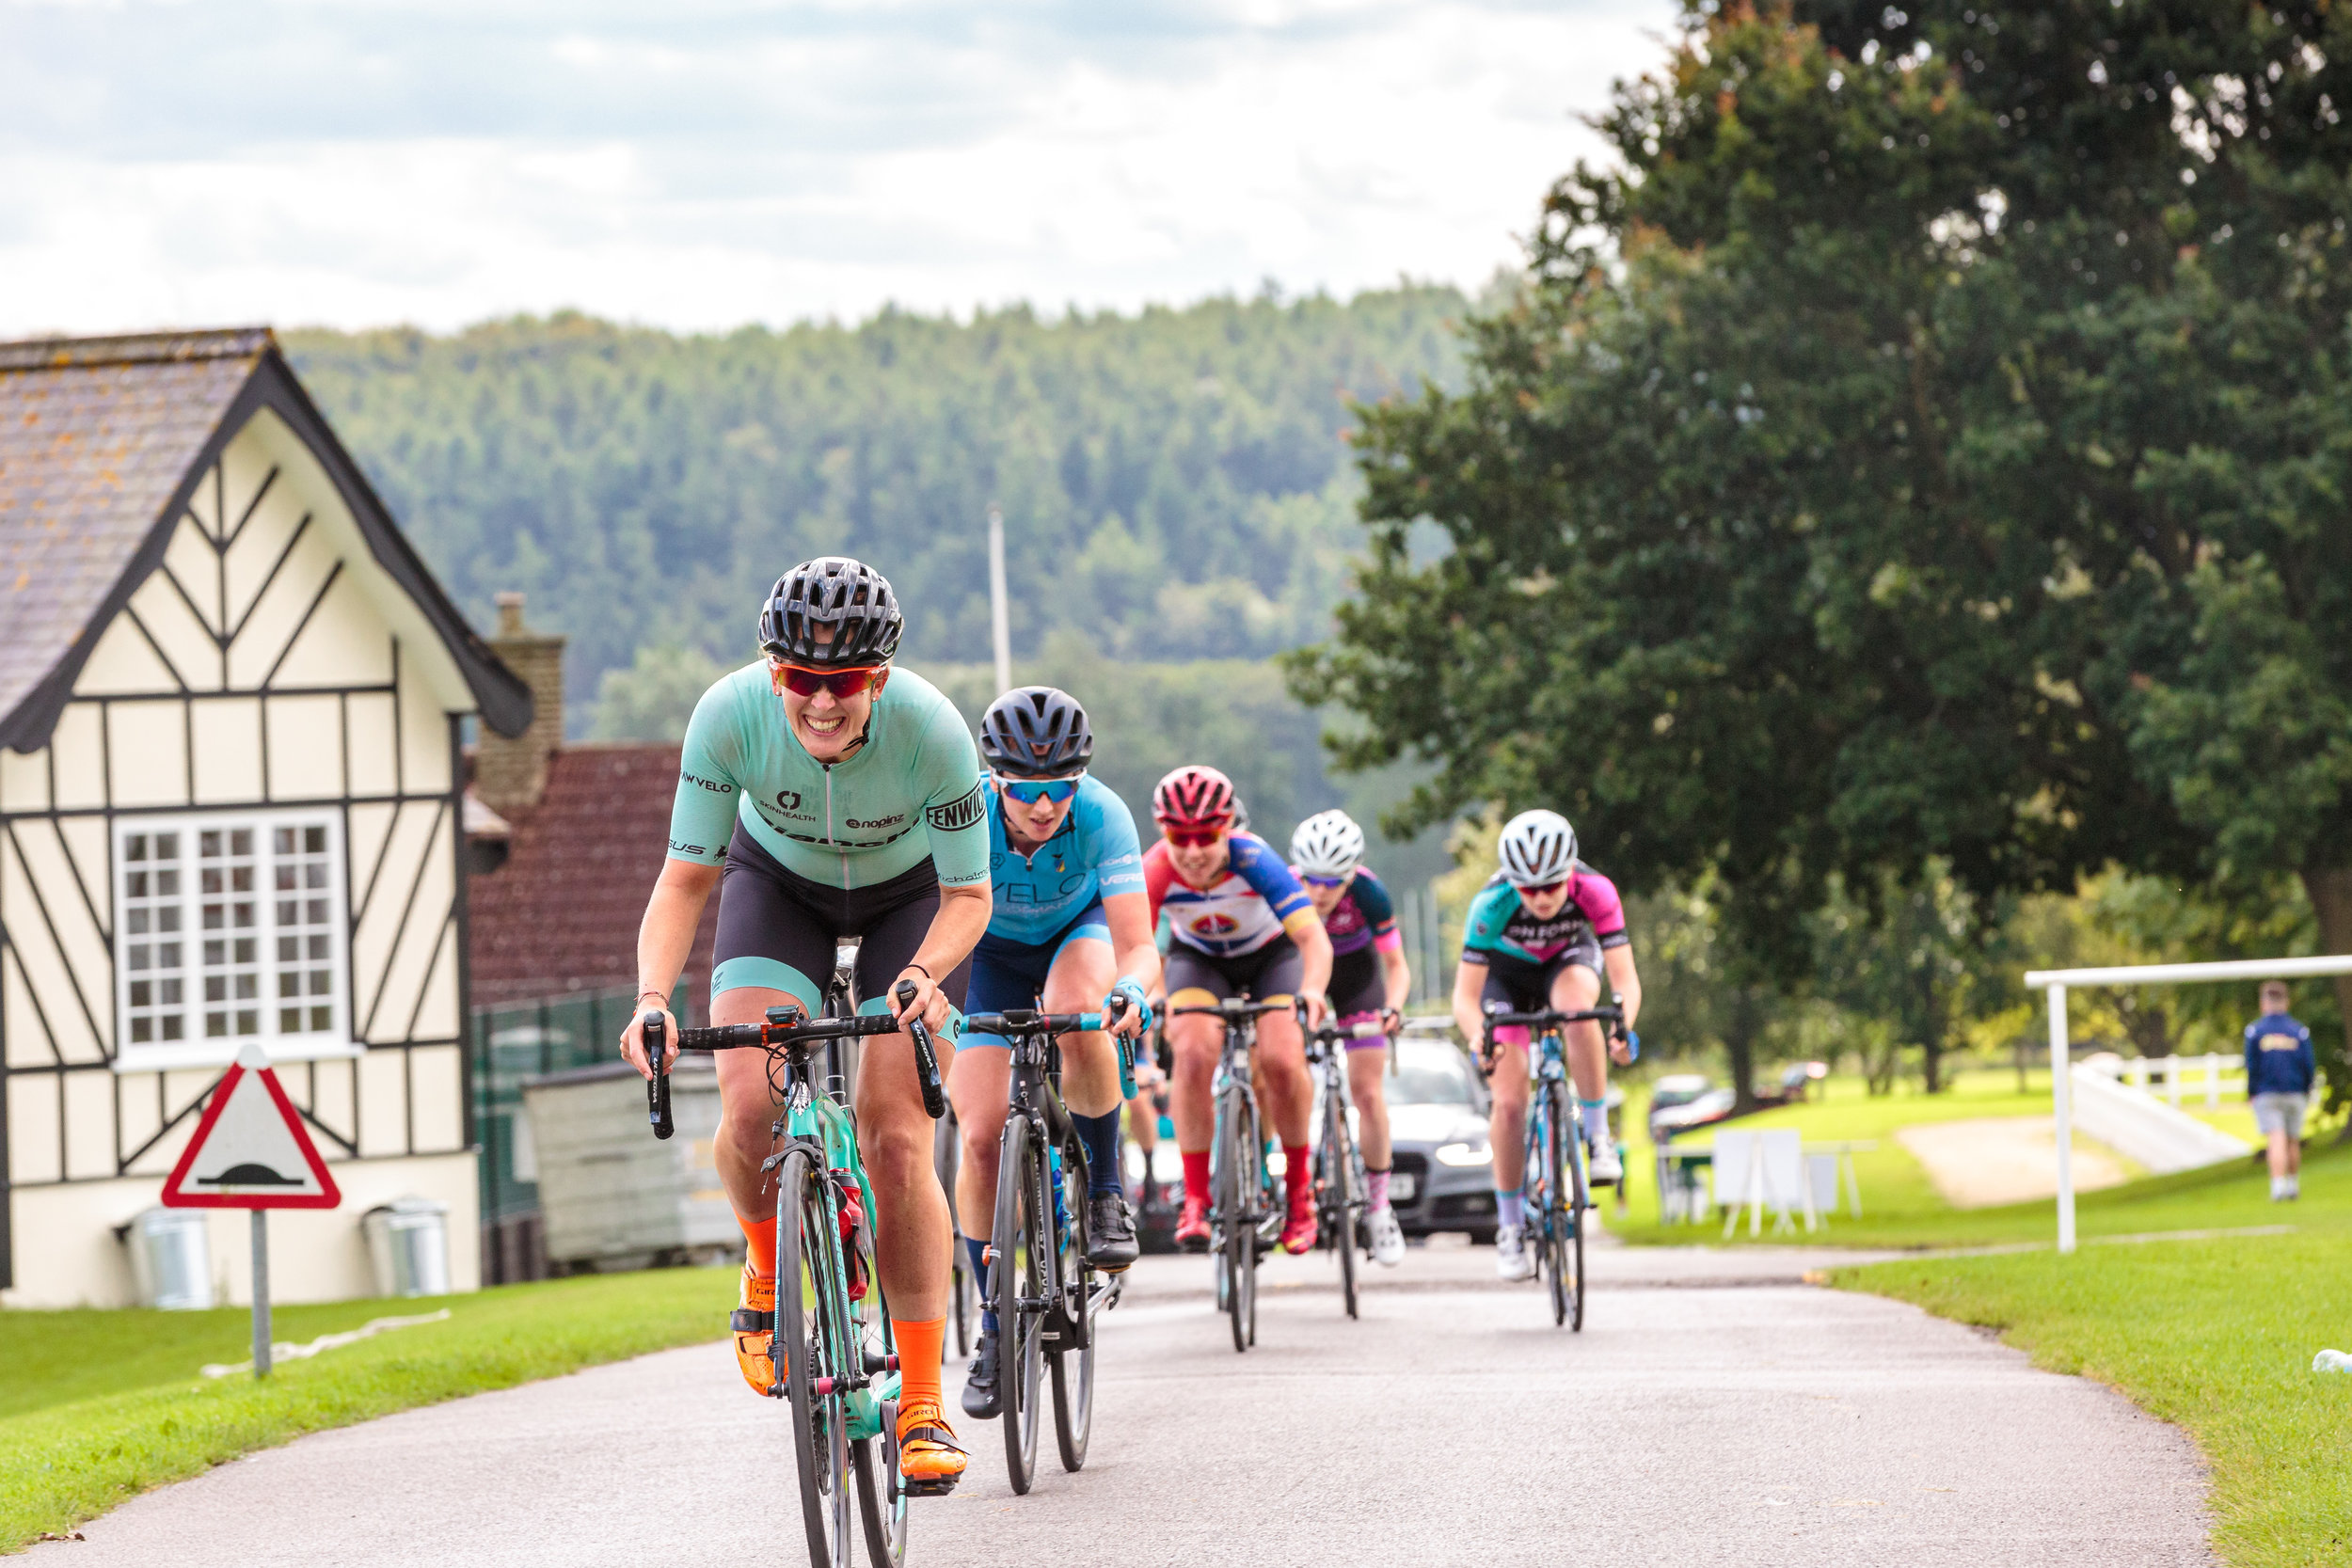 Team Bianchi Dama leading a bunch in the Women's Ryedale Grand Prix 2019